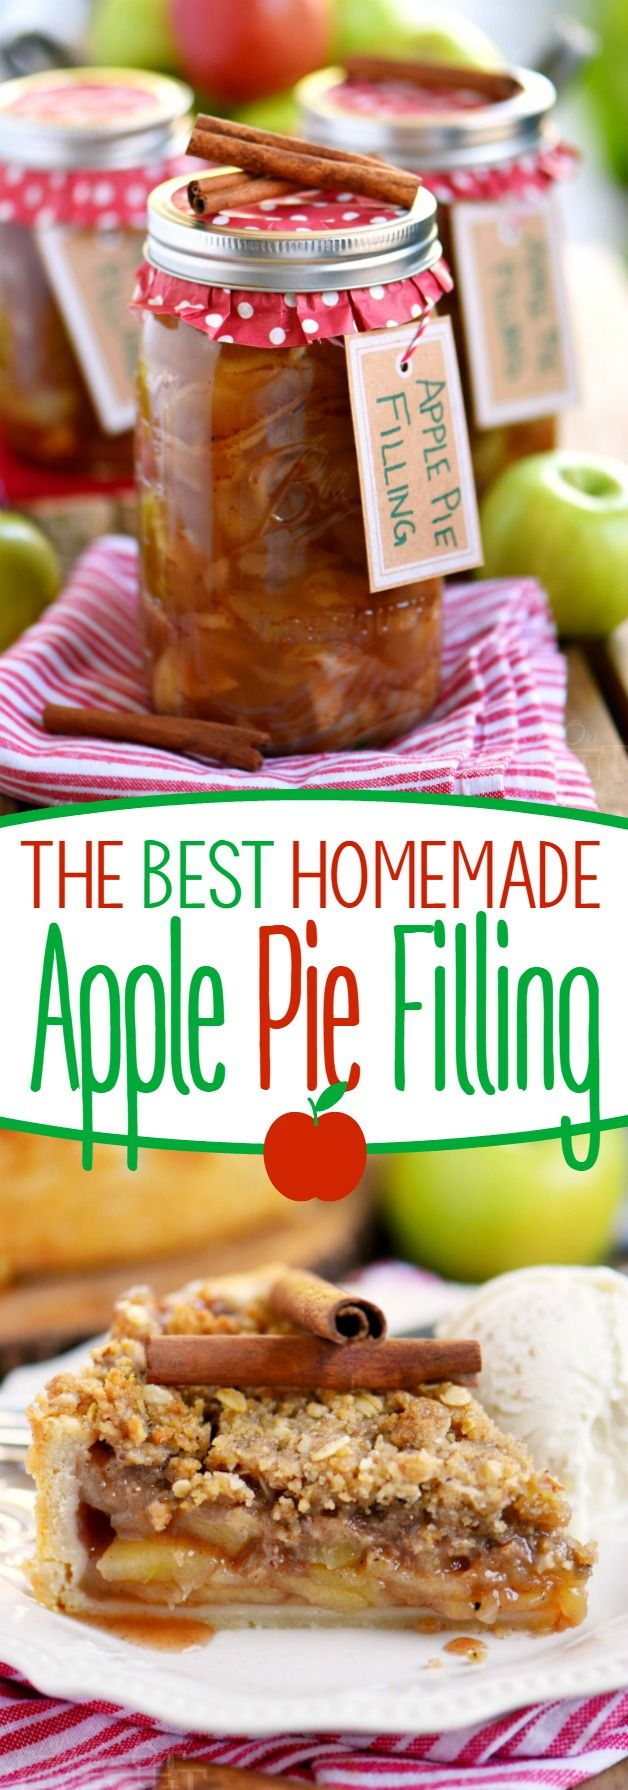 The BEST Homemade Apple Pie Filling! Perfect for pies, cobblers, strudels, and more! Keep on hand for an easy holiday season! Makes a lovely gift too!